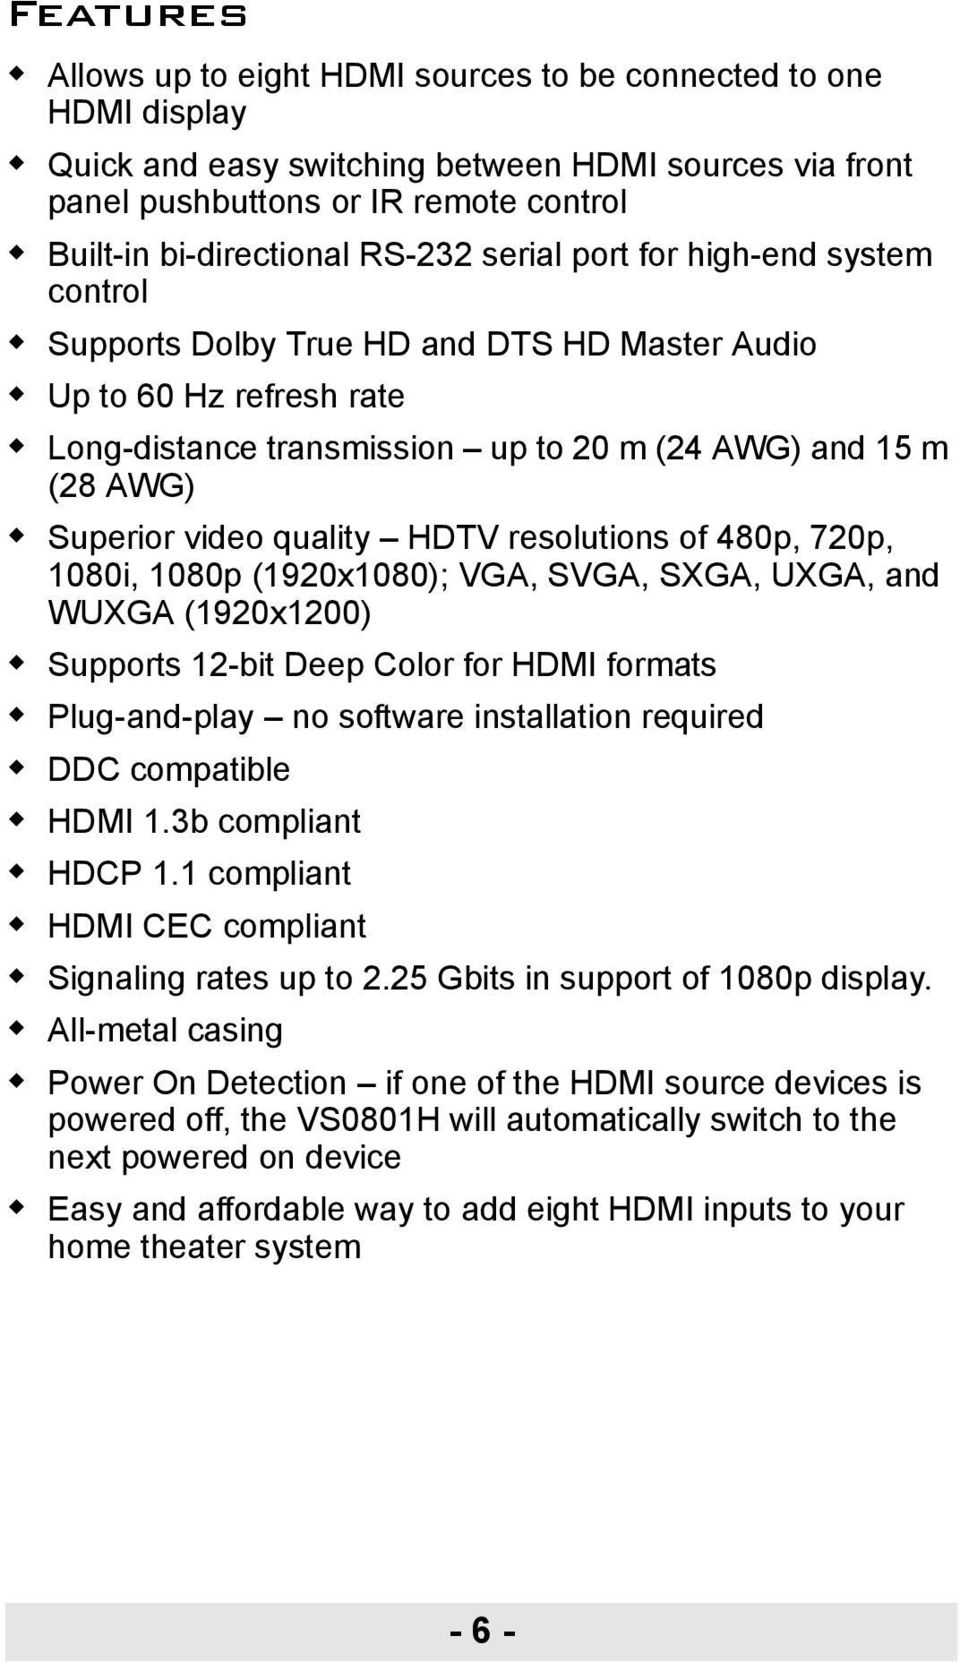 quality HDTV resolutions of 480p, 720p, 1080i, 1080p (1920x1080); VGA, SVGA, SXGA, UXGA, and WUXGA (1920x1200) Supports 12-bit Deep Color for HDMI formats Plug-and-play no software installation